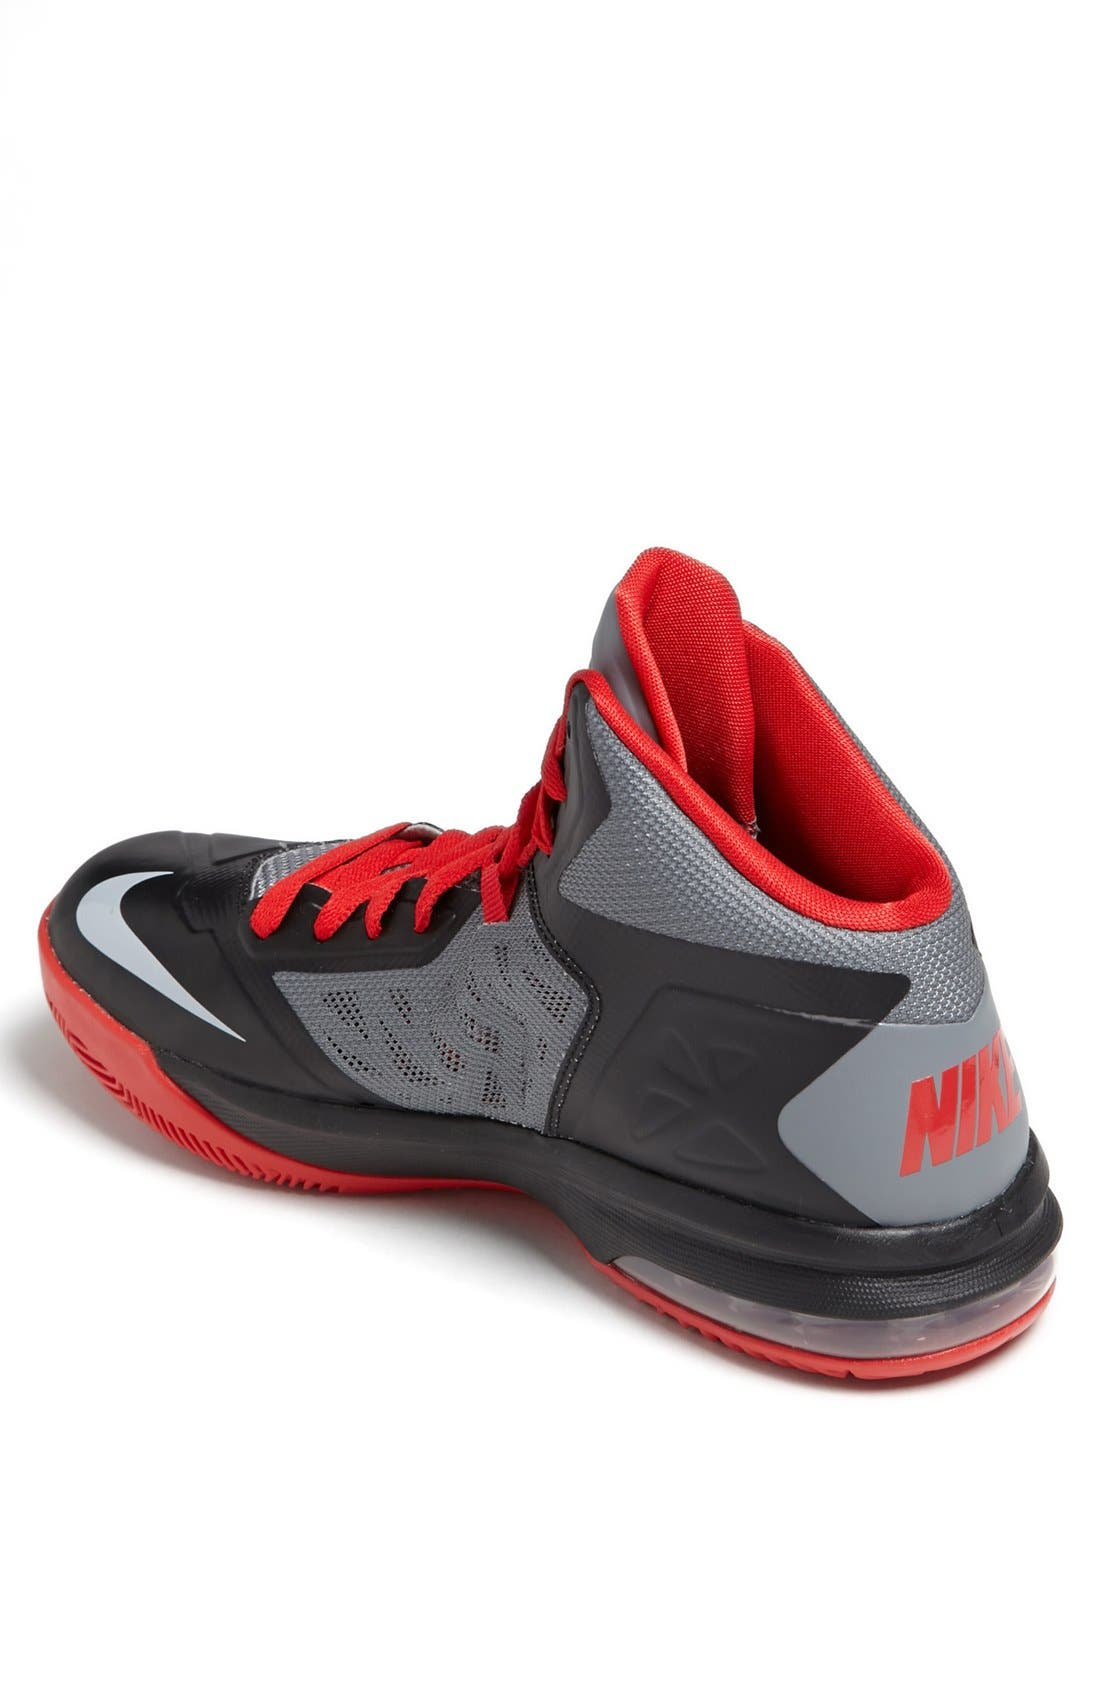 Alternate Image 2  - Nike 'Air Max Body U' Basketball Shoe (Men)